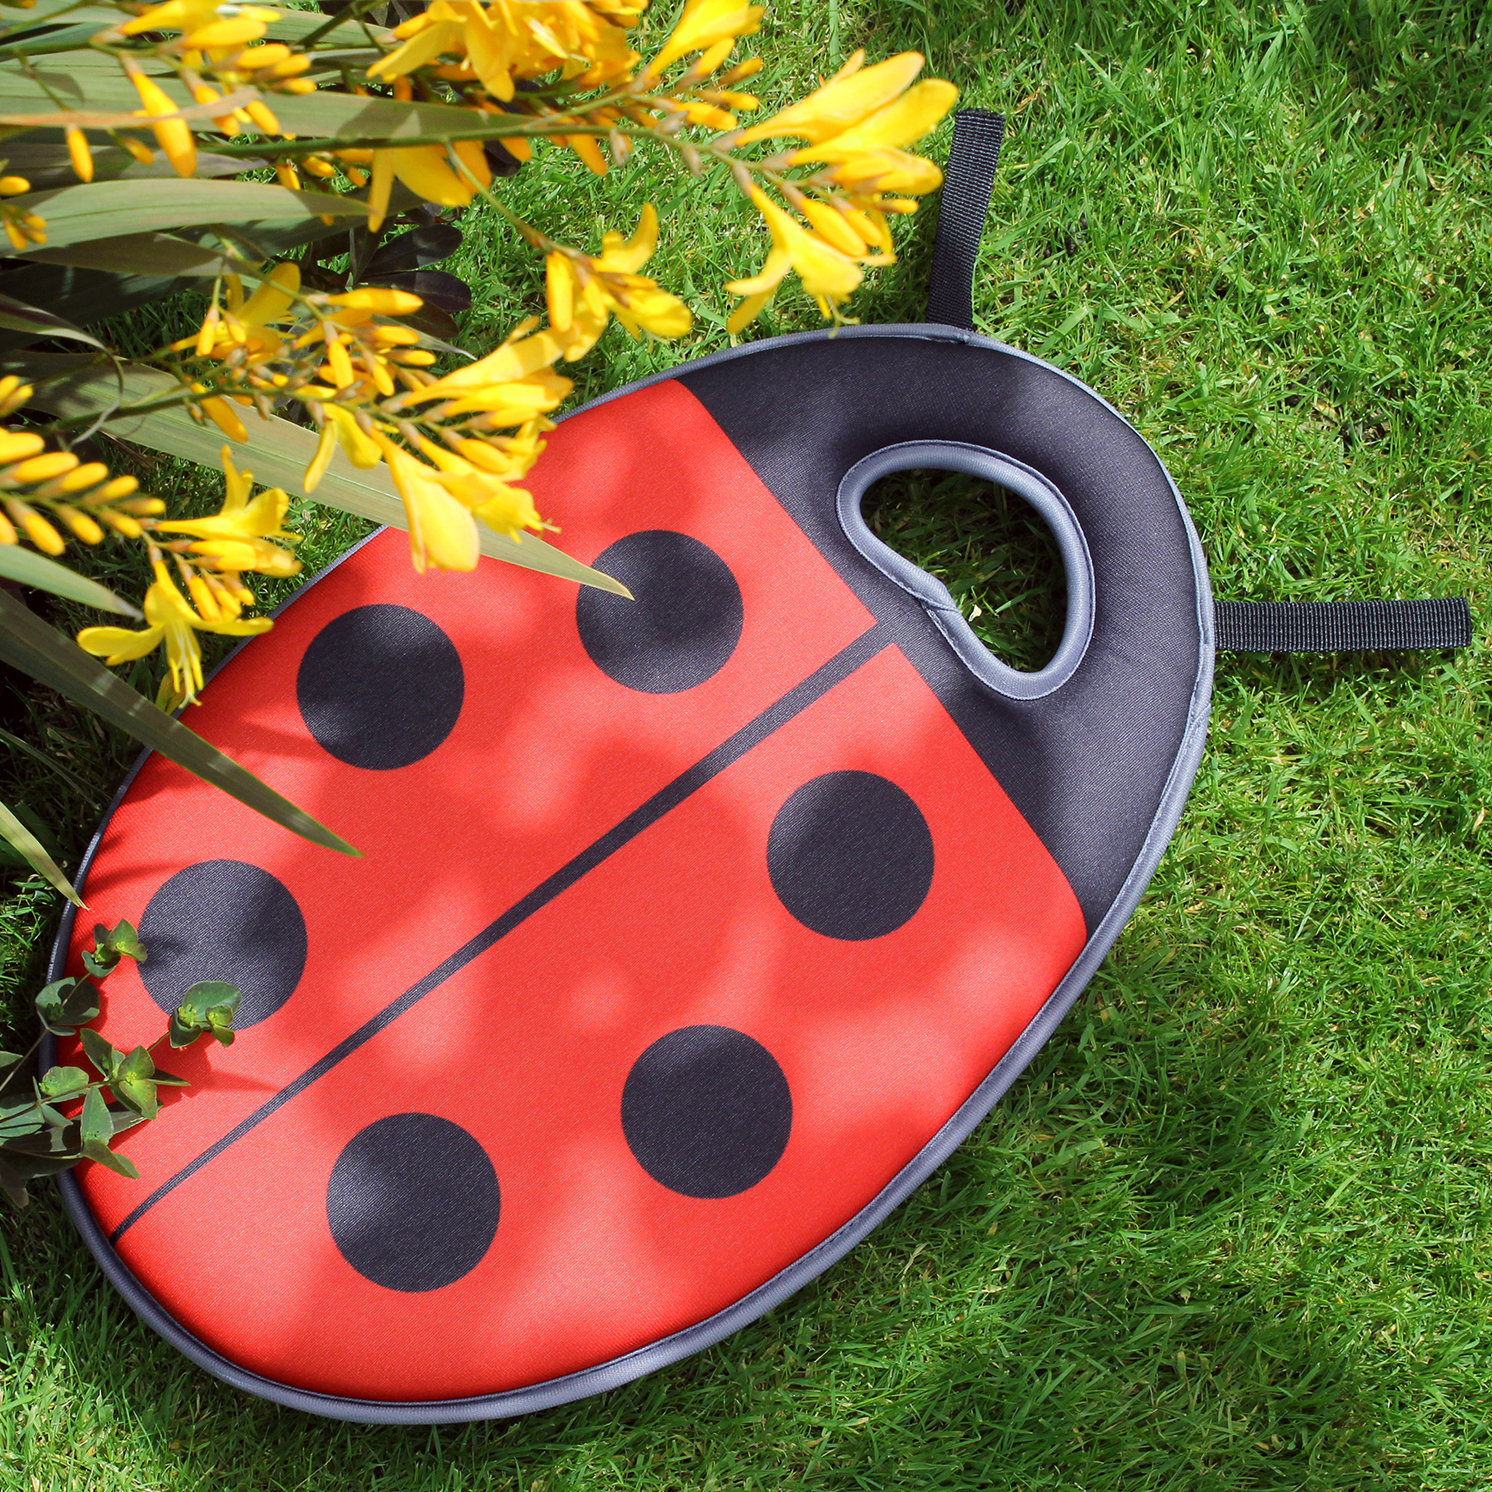 Burgon & Ball – Budding Gardeners Collection Hand Fork & Dotty Kneeler Set